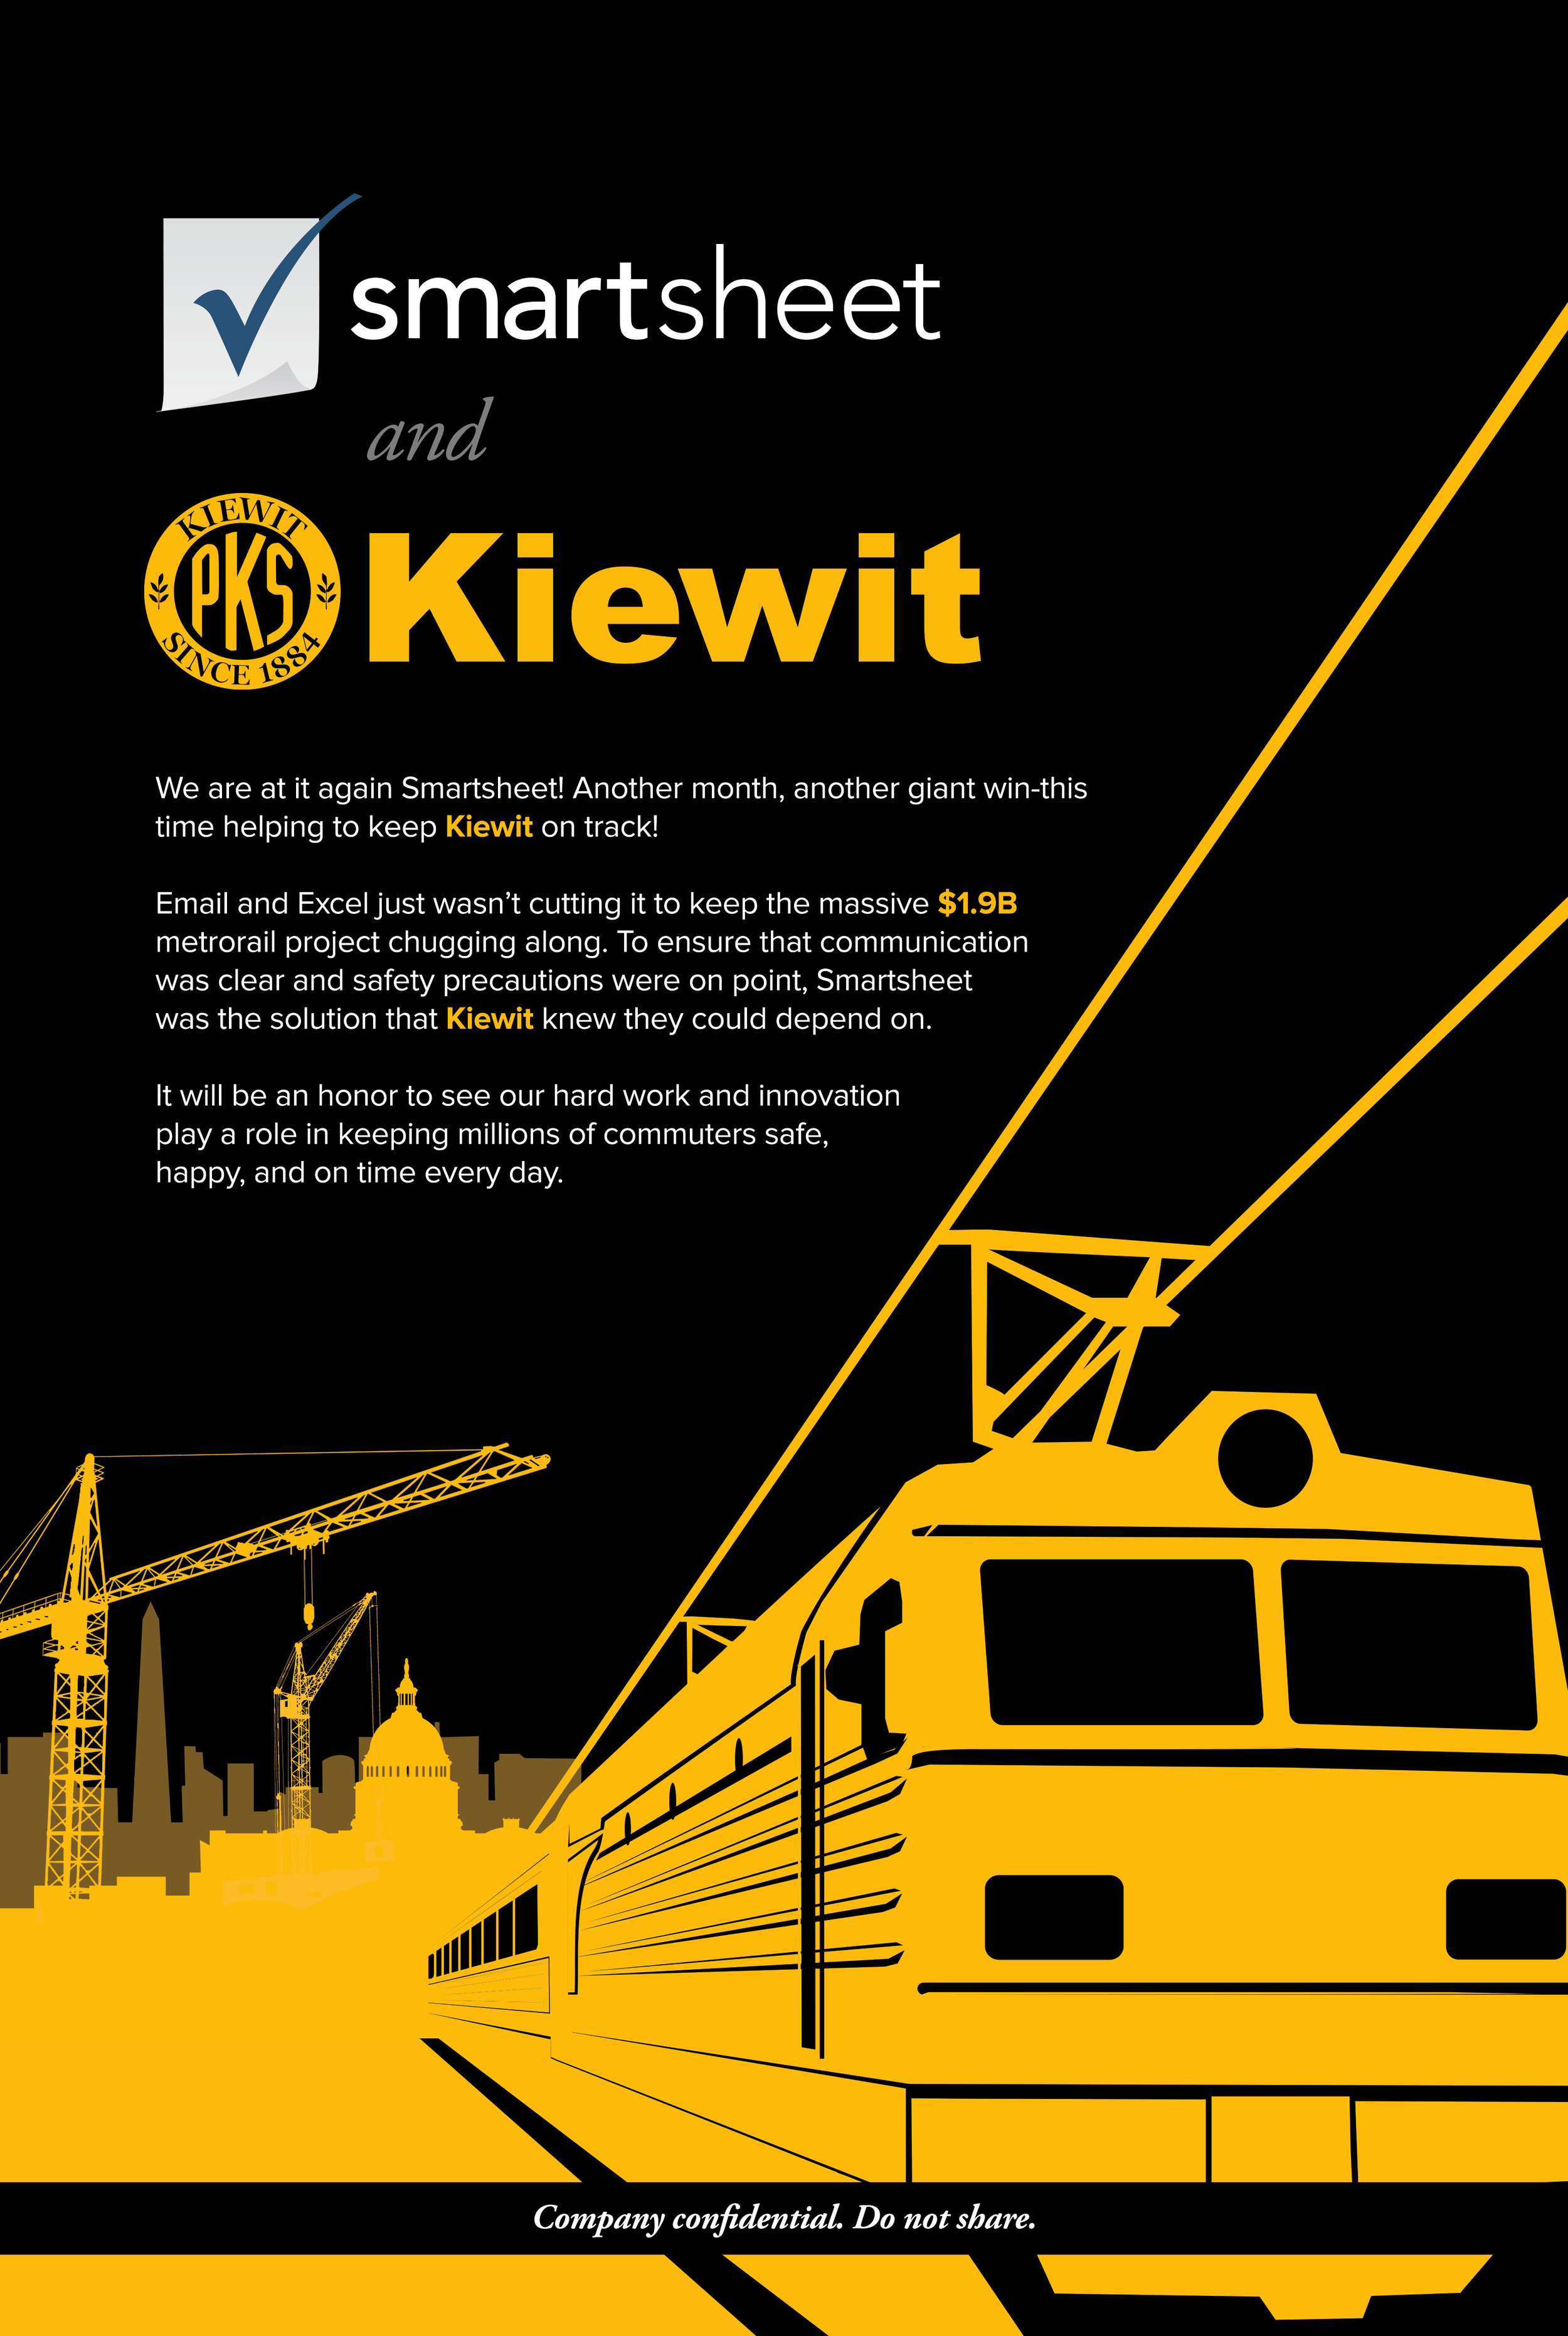 kiewit-poster-smallworks-v2-(BELL-MPC-BUNG-(2)'s-conflicted-copy-2016-08-30).jpg